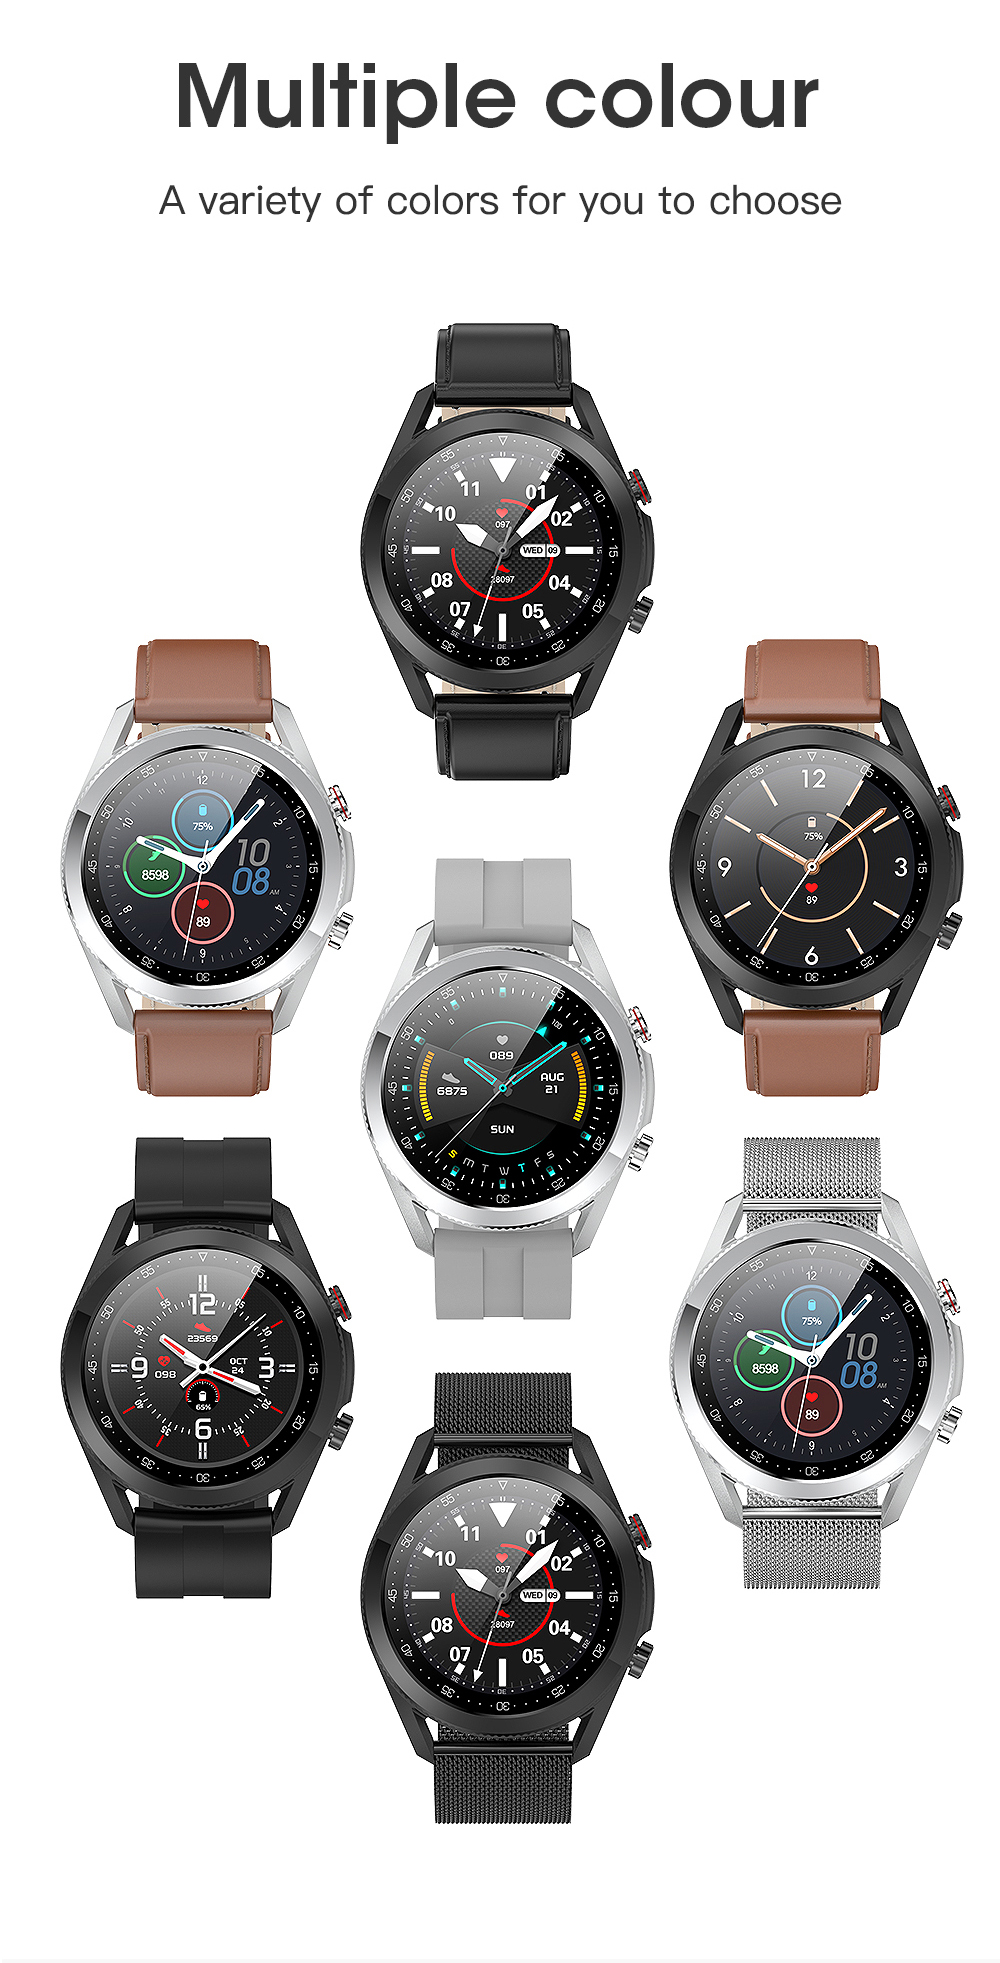 H5e9e51322e6040be81eb925939f1f02aq Timewolf Smart Watch Men 2021 IP68 Waterproof Android Full Touch Sports Smartwatch Bluetooth Call For Samsung Huawei Android IOS